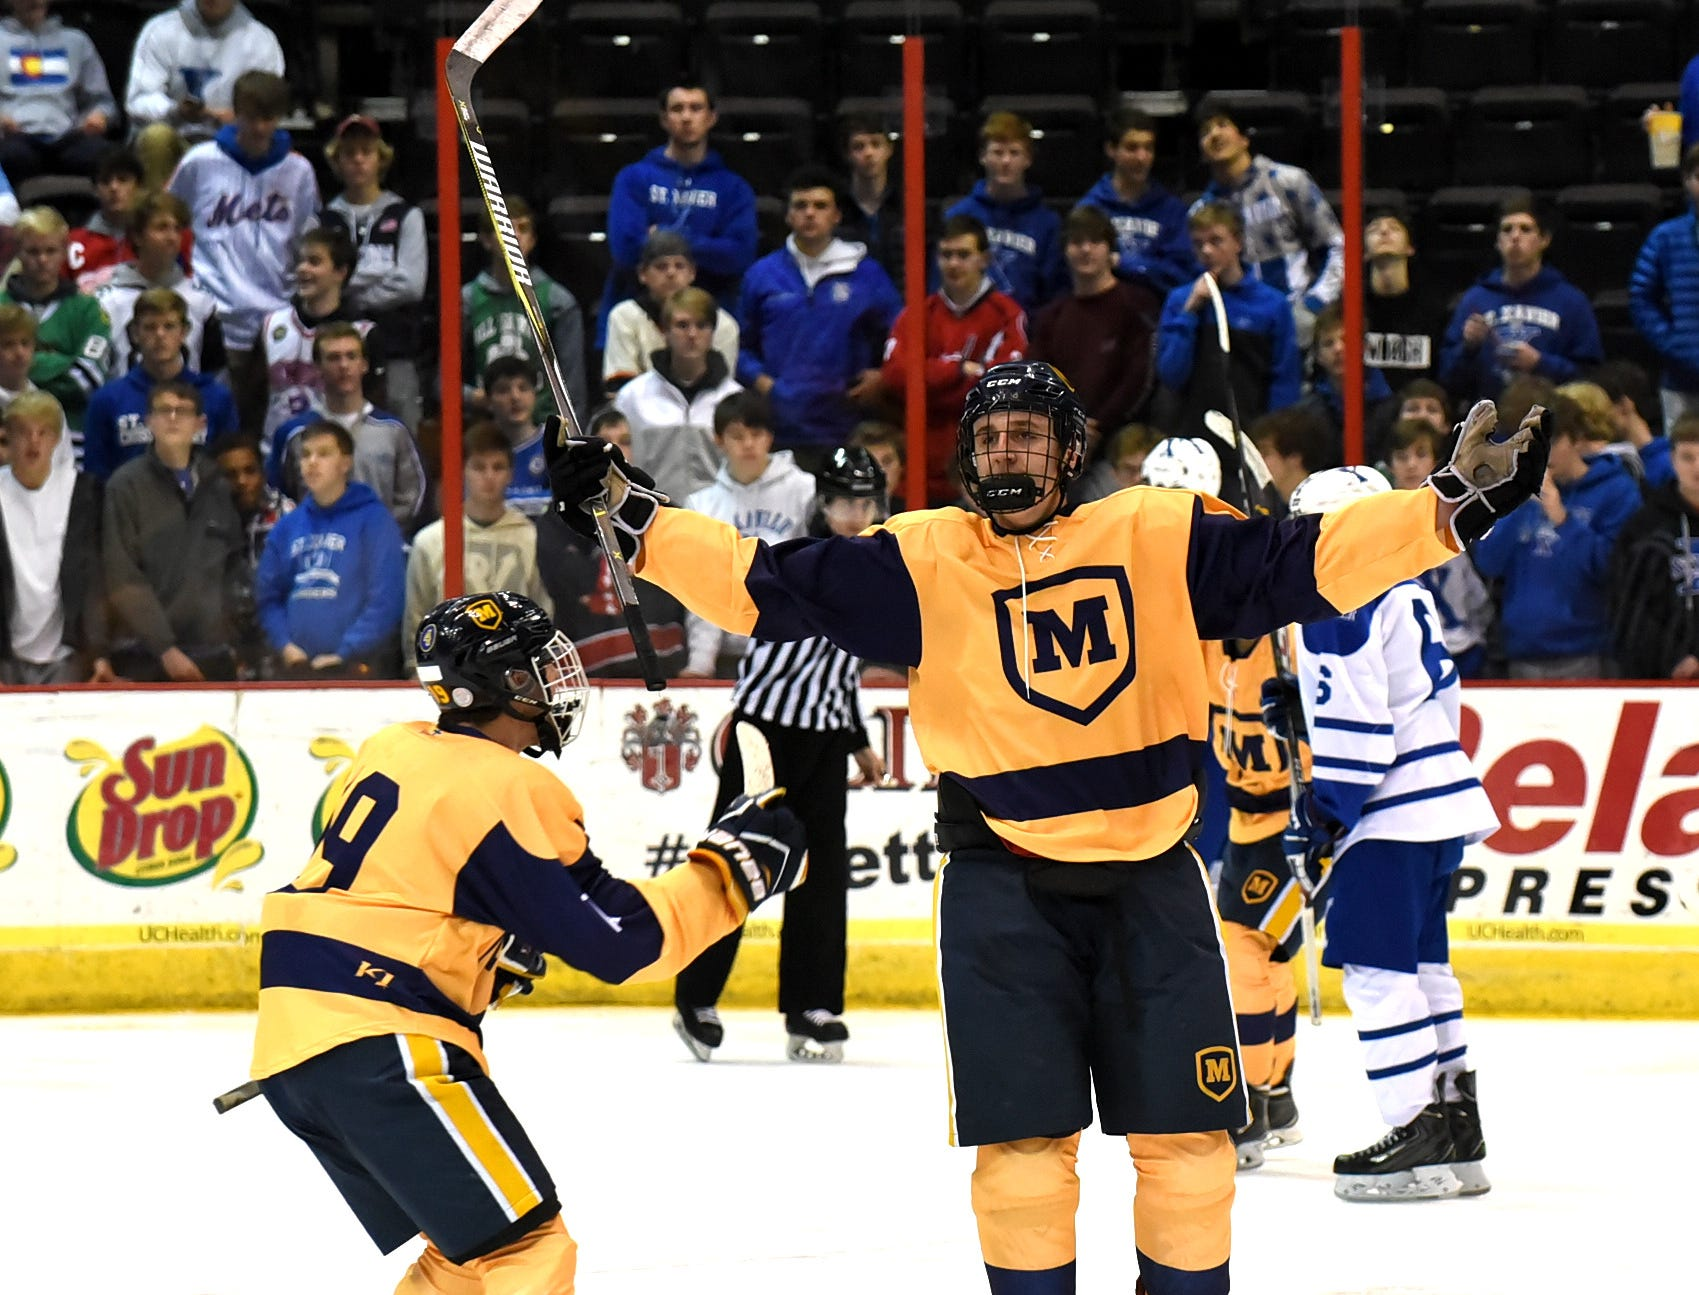 Shay Black raises his stick in celebration of what would turn out to be the winning goal for Moeller at US Bank Arena, December 7, 2018.